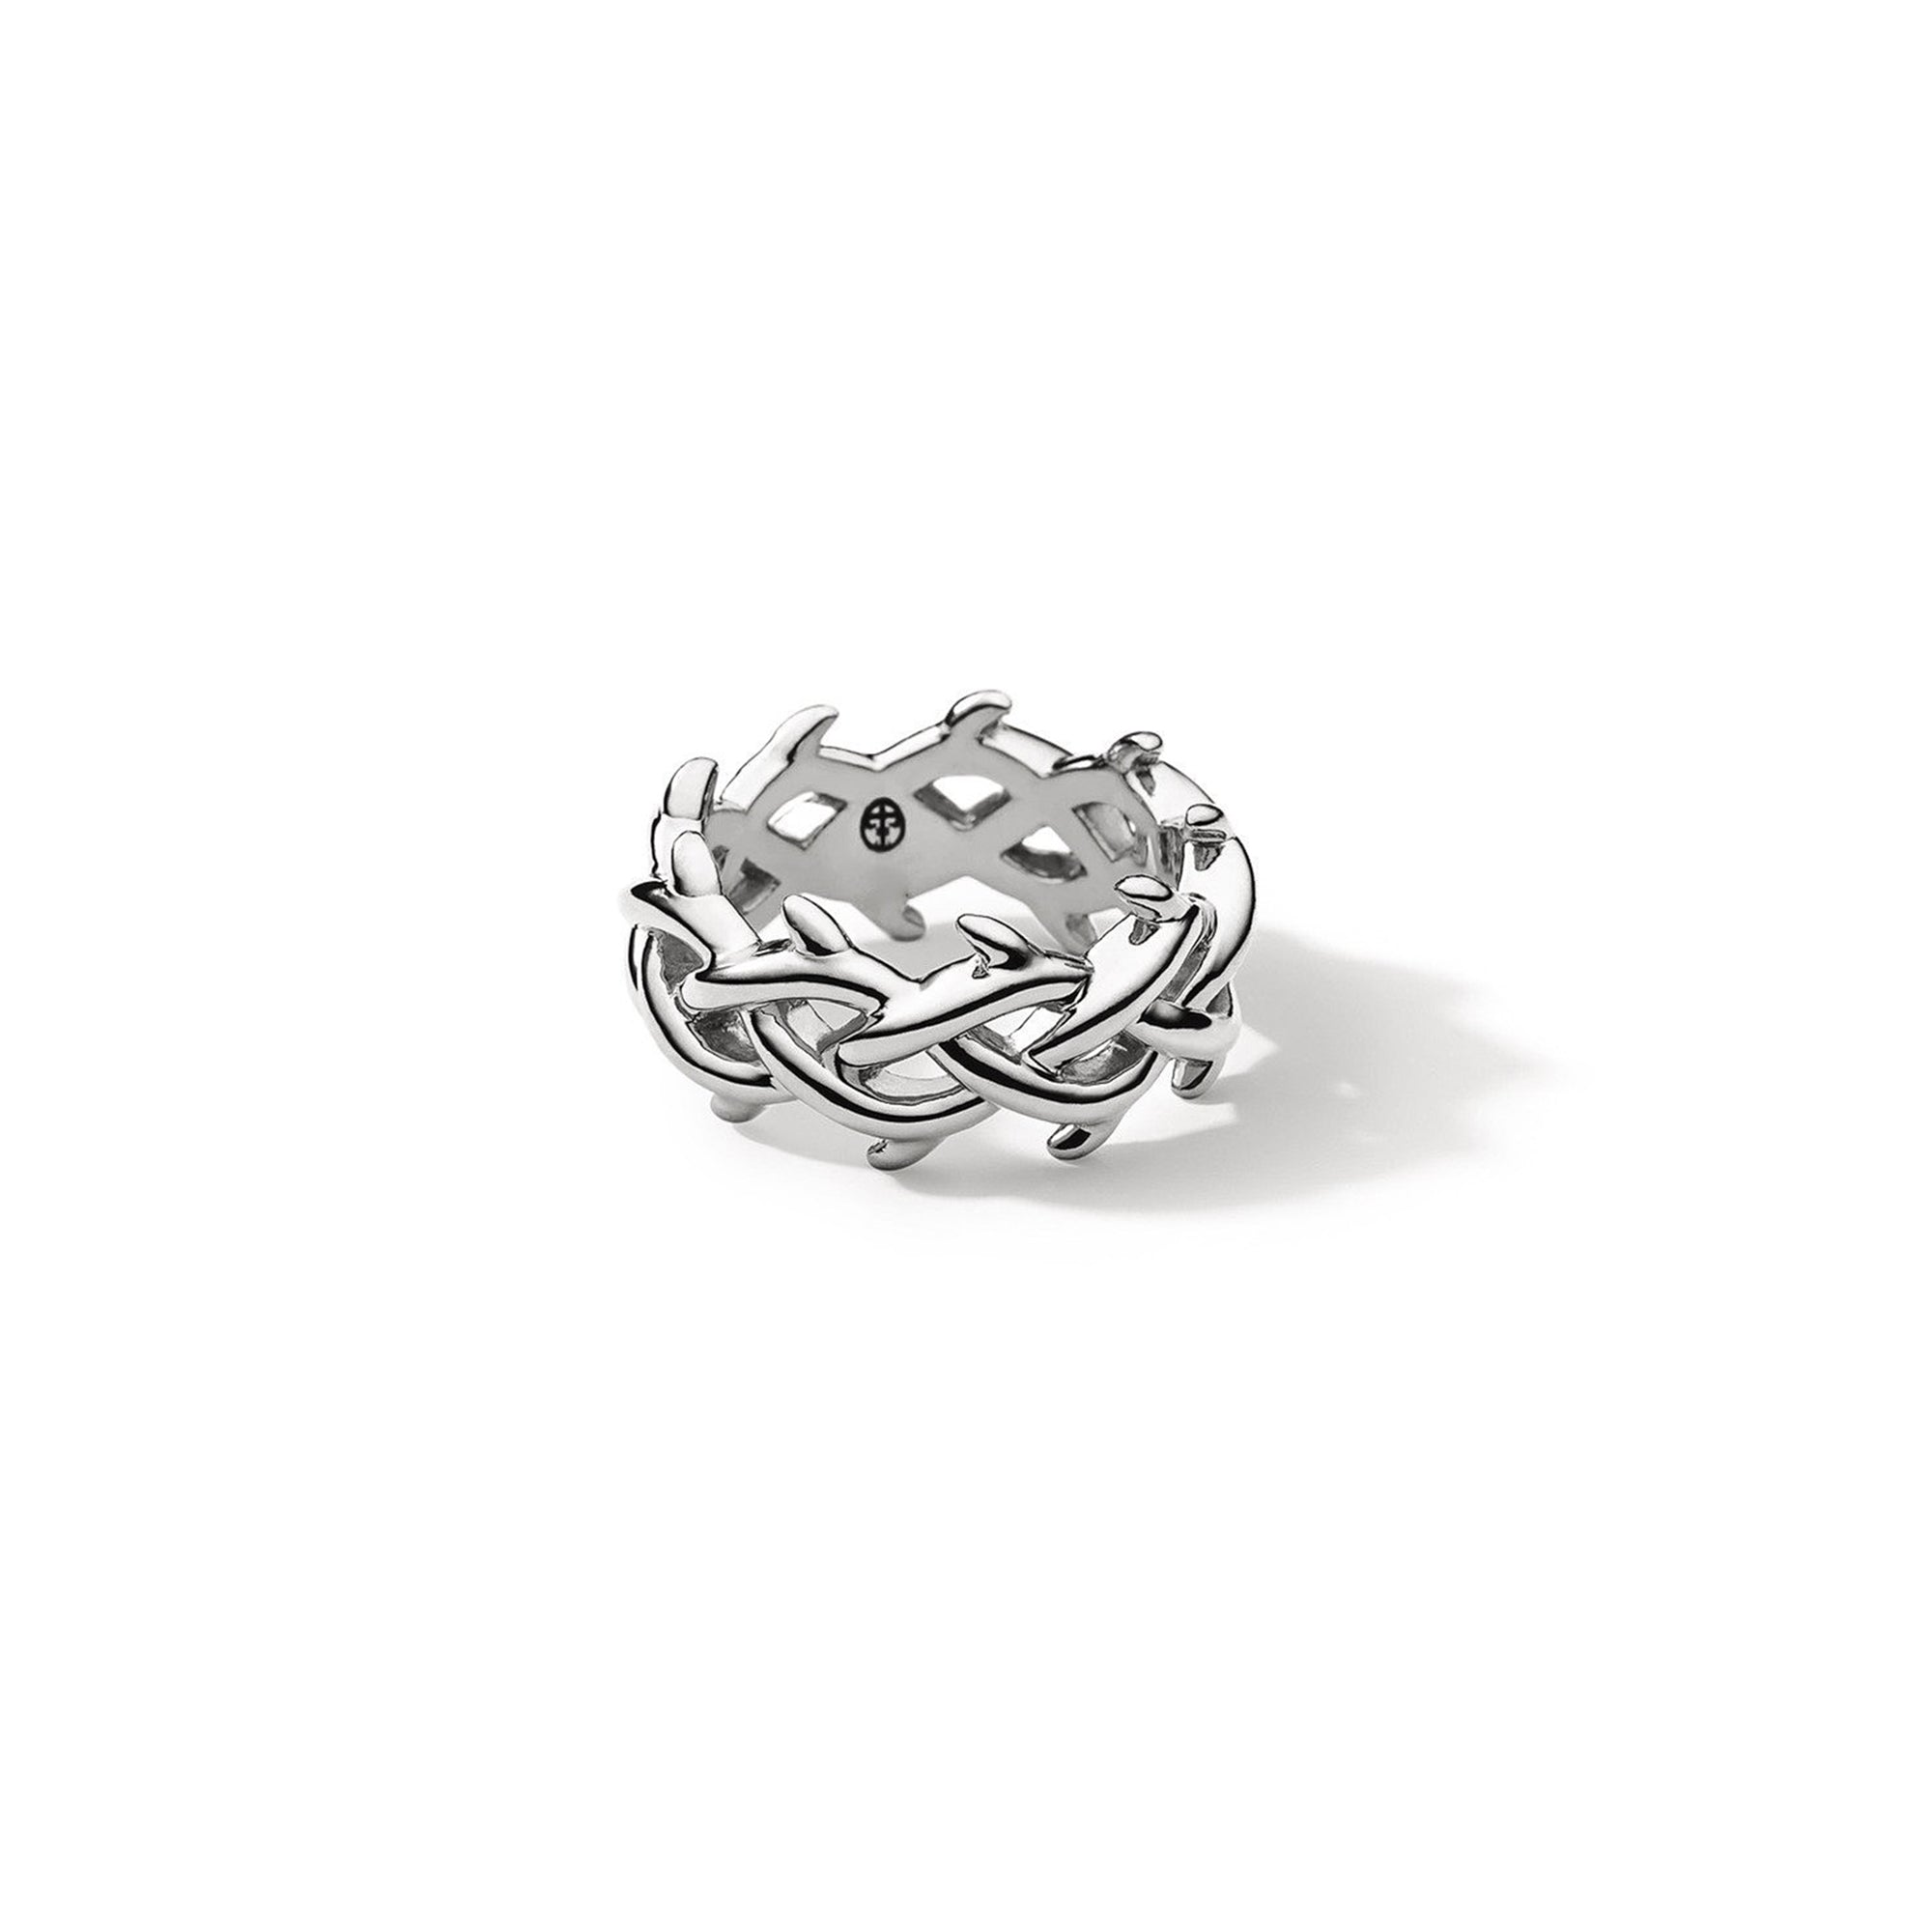 LAPSTONE X THORN 7MM CROWN RING - SILVER